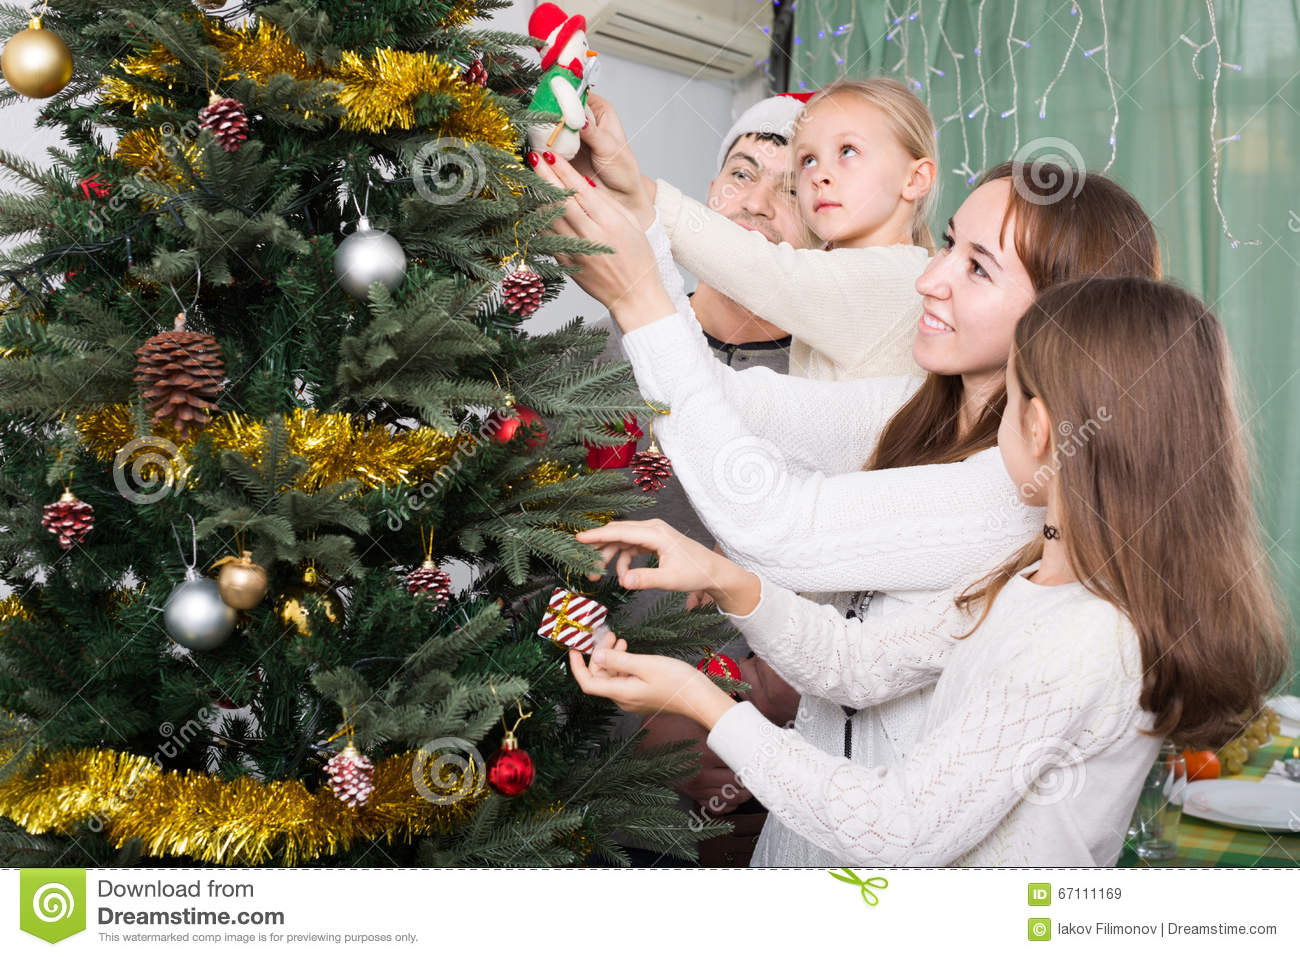 People Decorating A Christmas Tree people decorating christmas tree stock photo - image: 67111169